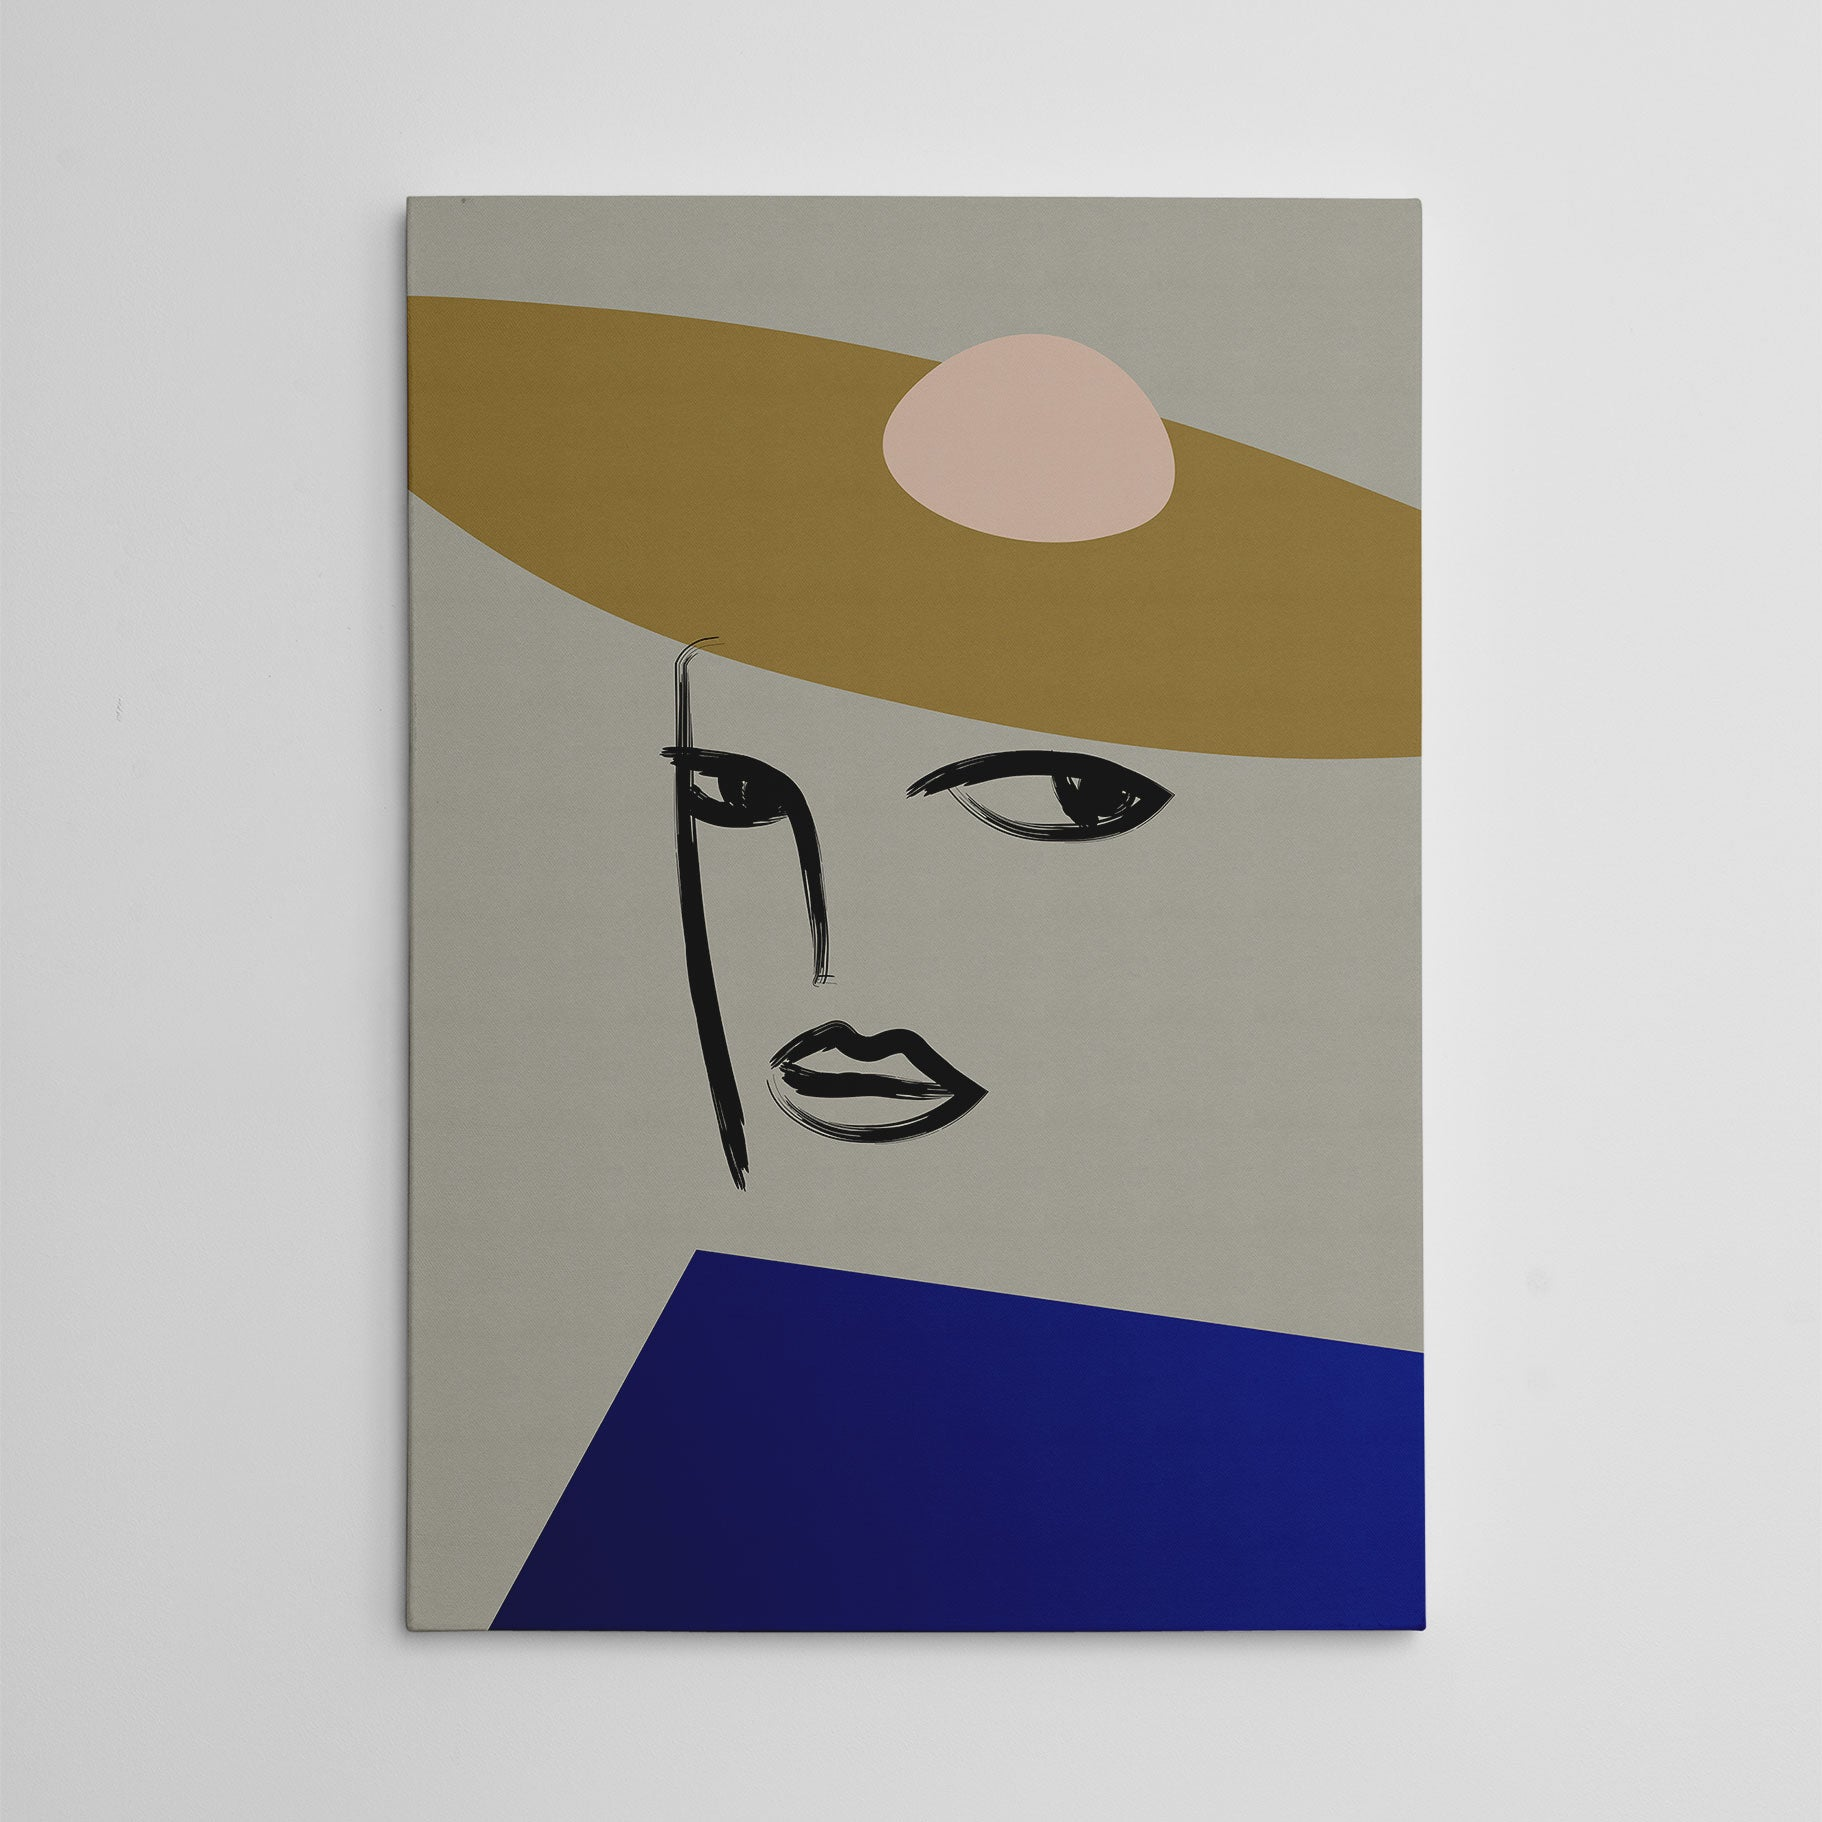 Line art canvas print with abstract woman's portrait, on grey background.